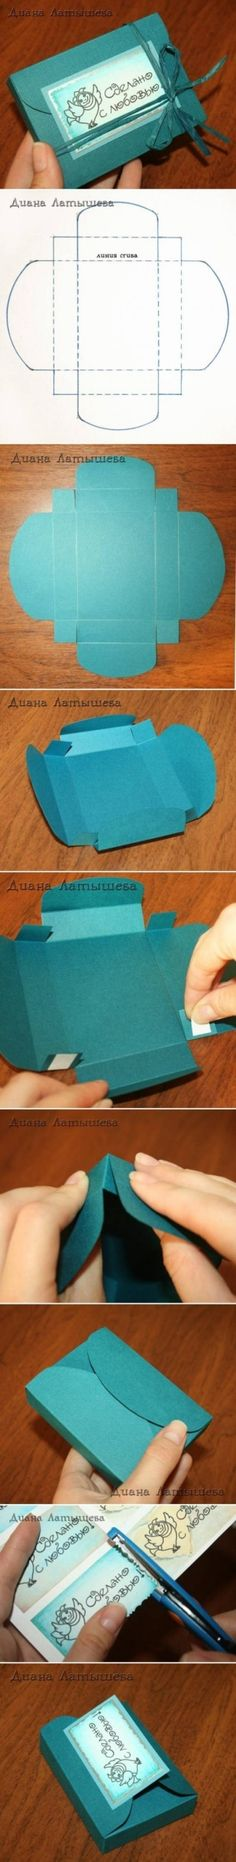 How To Make Fancy Gift Boxes step by step DIY tutorial instructions , How to, how to do, diy instructions, crafts, do it yourself, diy websi by Mary Smith fSesz